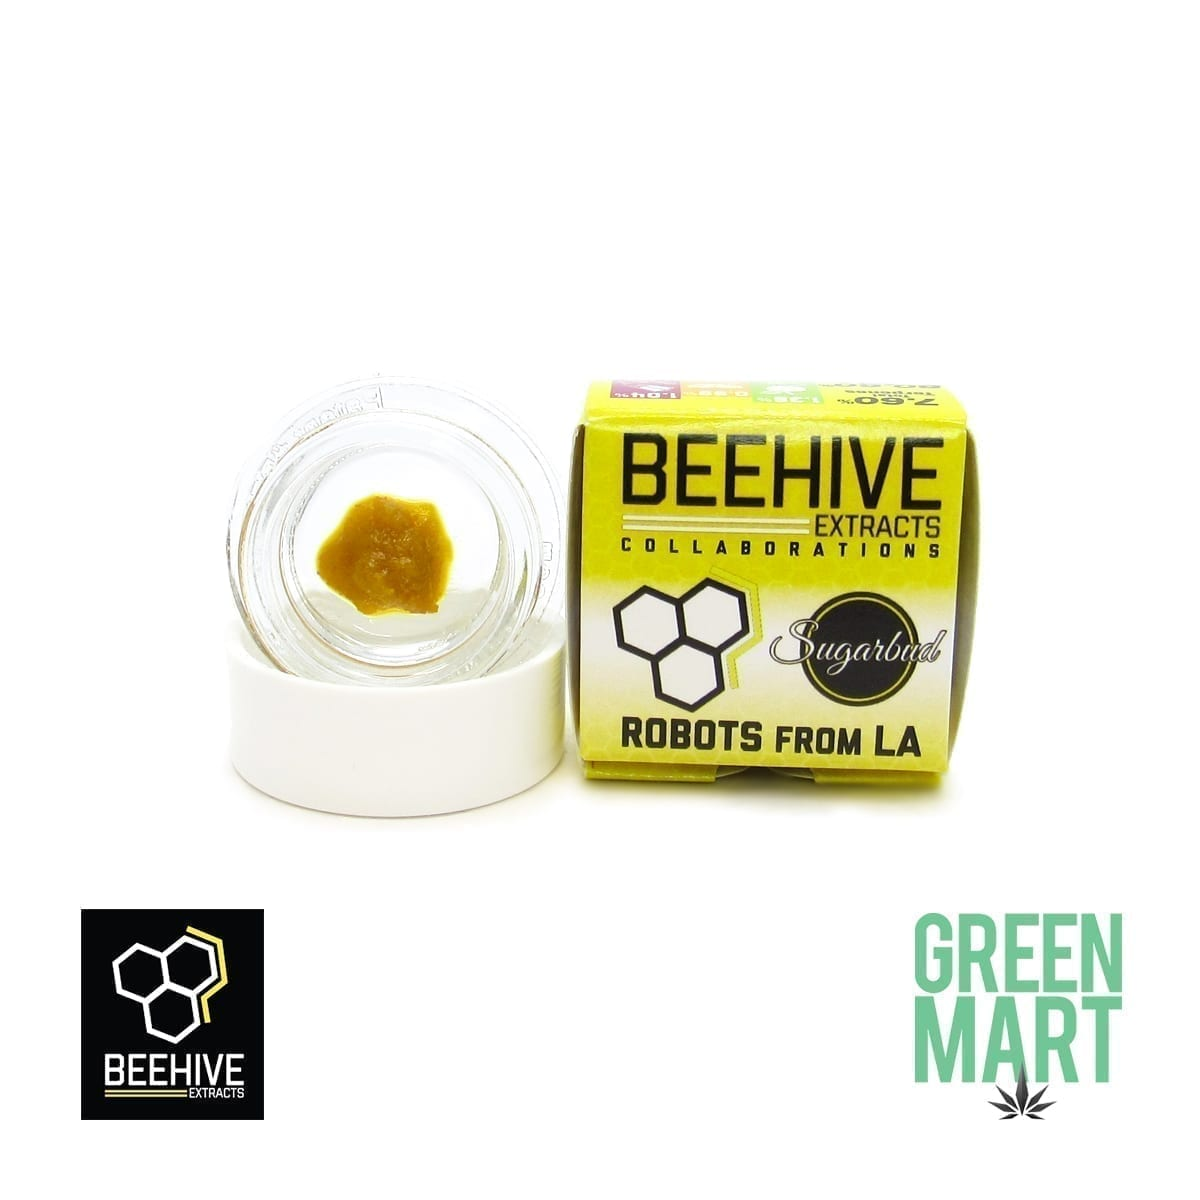 Bee Hive Extracts - Robots from LA